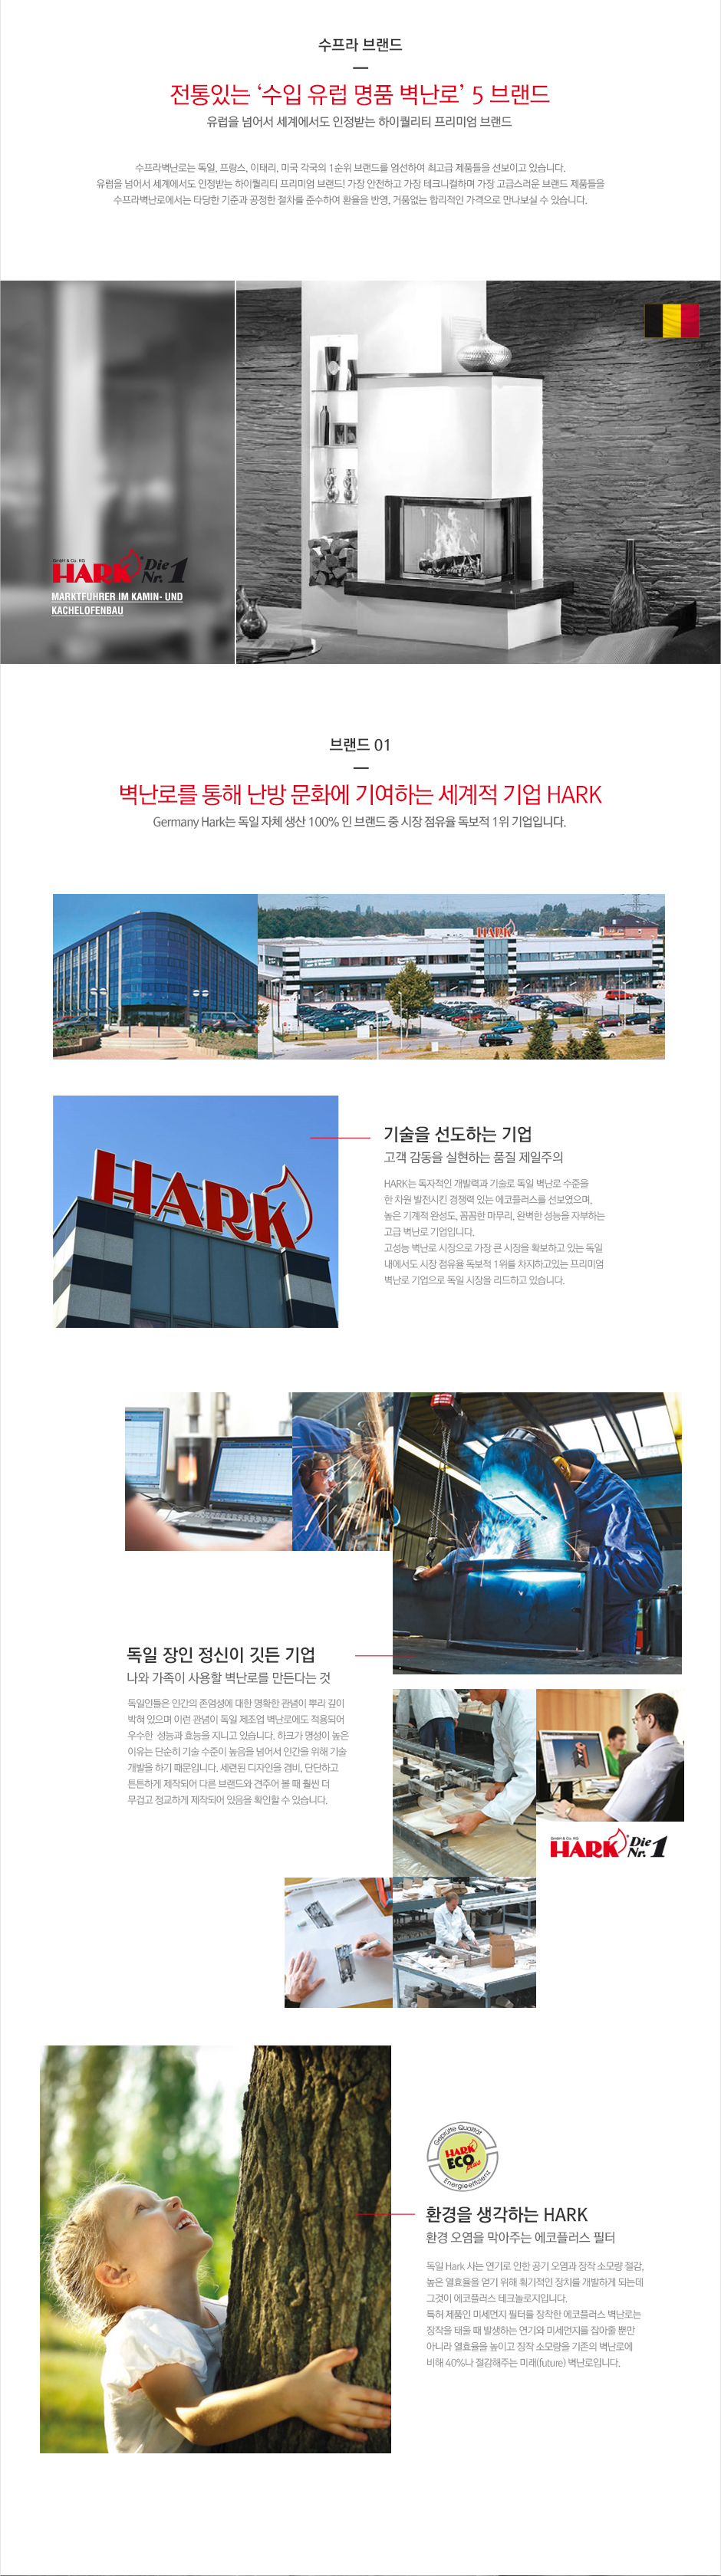 company_introduce_0602_2_1.jpg